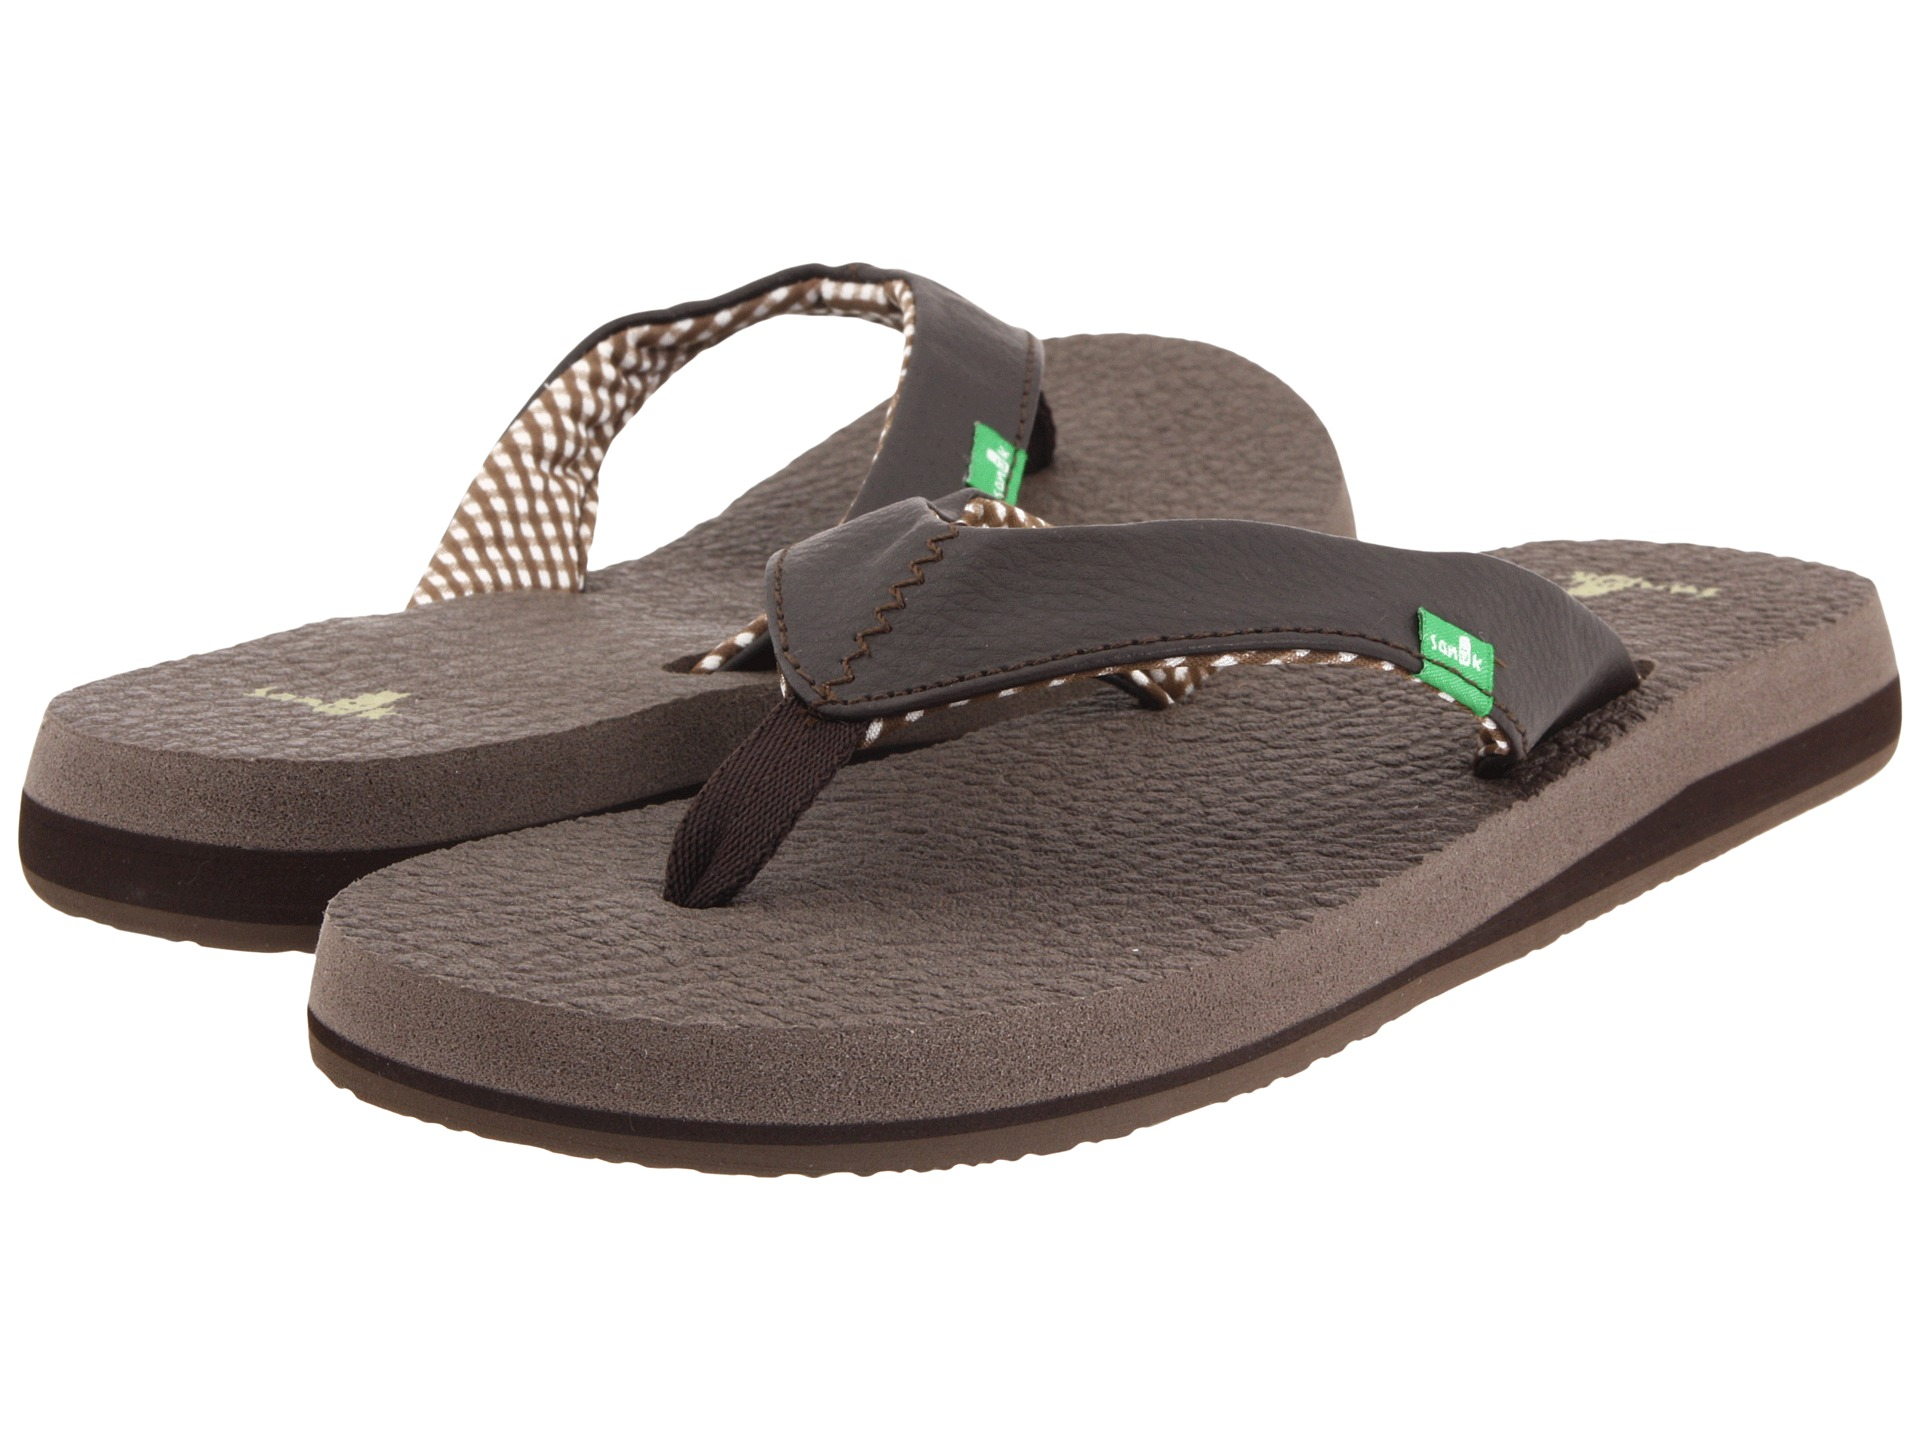 Sanuk Shoes Holiday Sale: Save up to 35% off! Shop bnightf.ml's selection of Sanuk shoes and sandals - over styles available including the Yoga Mat flip flop, Donna Hemp slip-on, TKO Sneaker, Yoga Sling sandal, and more.